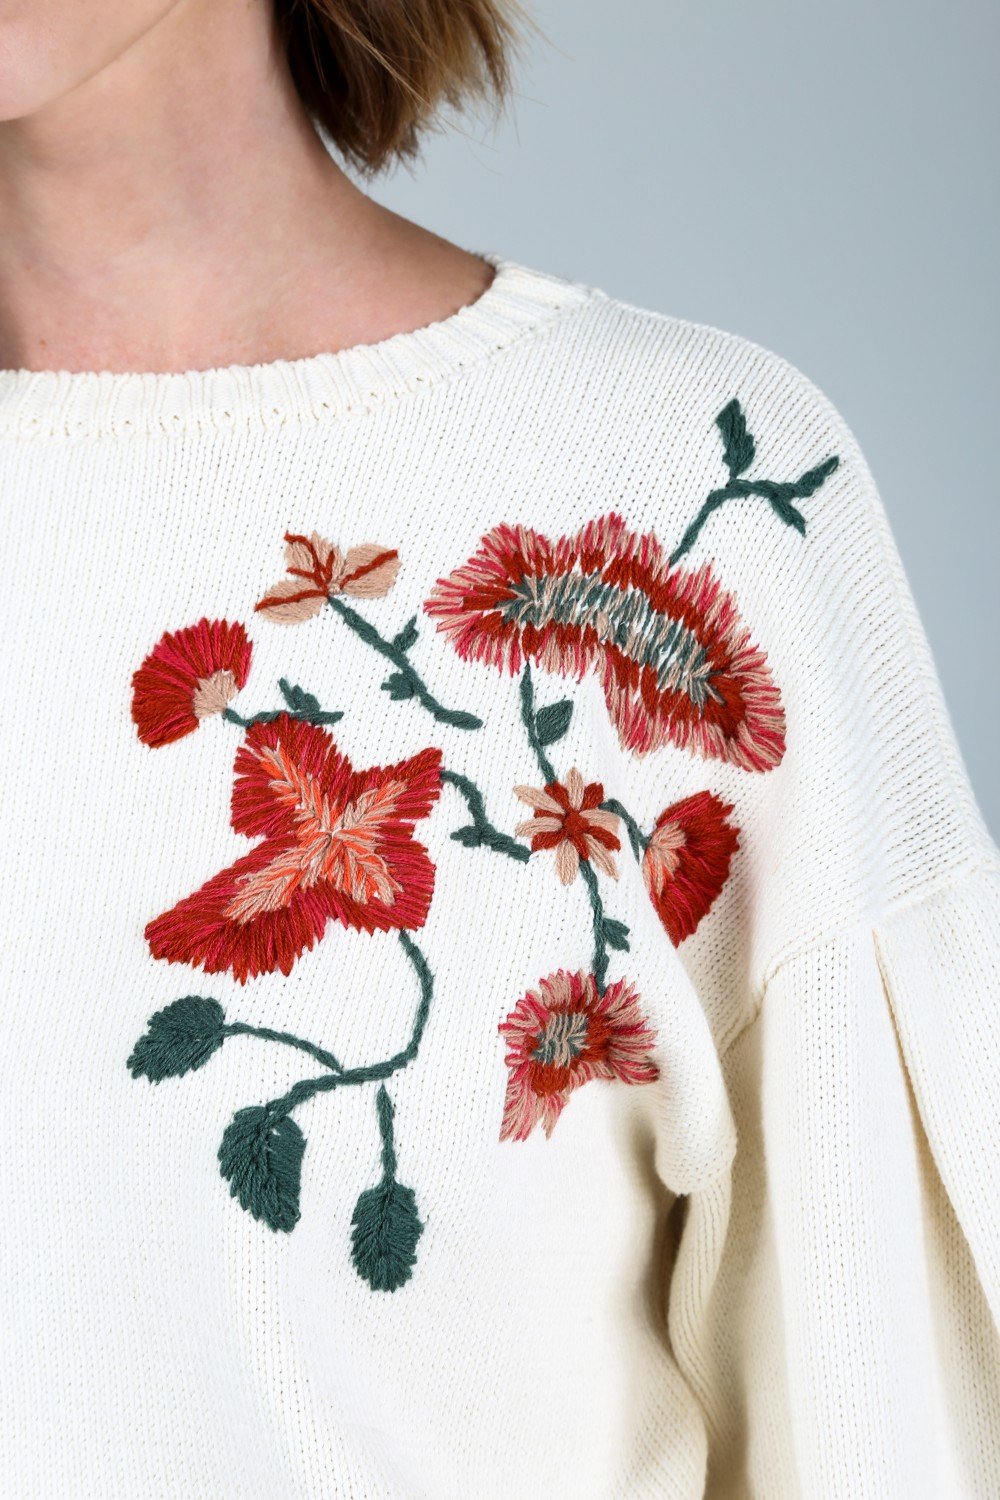 TRICOT BLOOMING I21